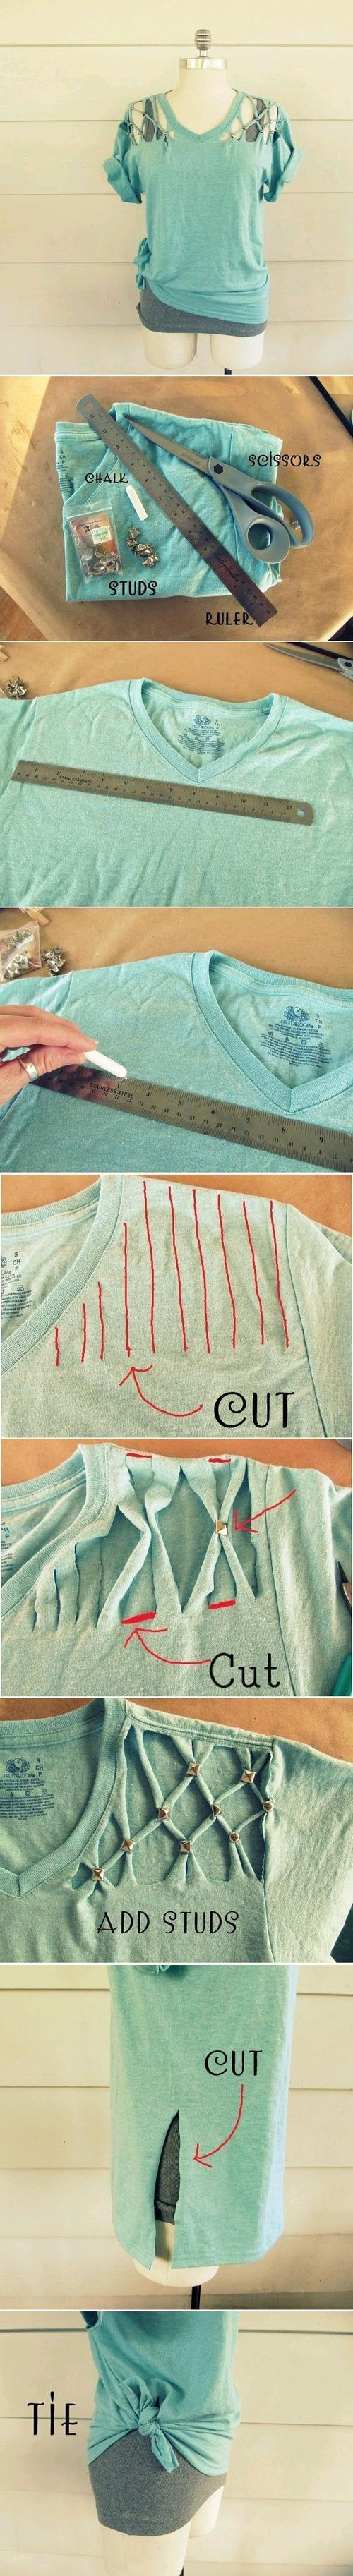 Diy cool studded t shirt diy projects usefuldiy on imgfave diy cool studded t shirt diy projects usefuldiy on imgfave solutioingenieria Gallery